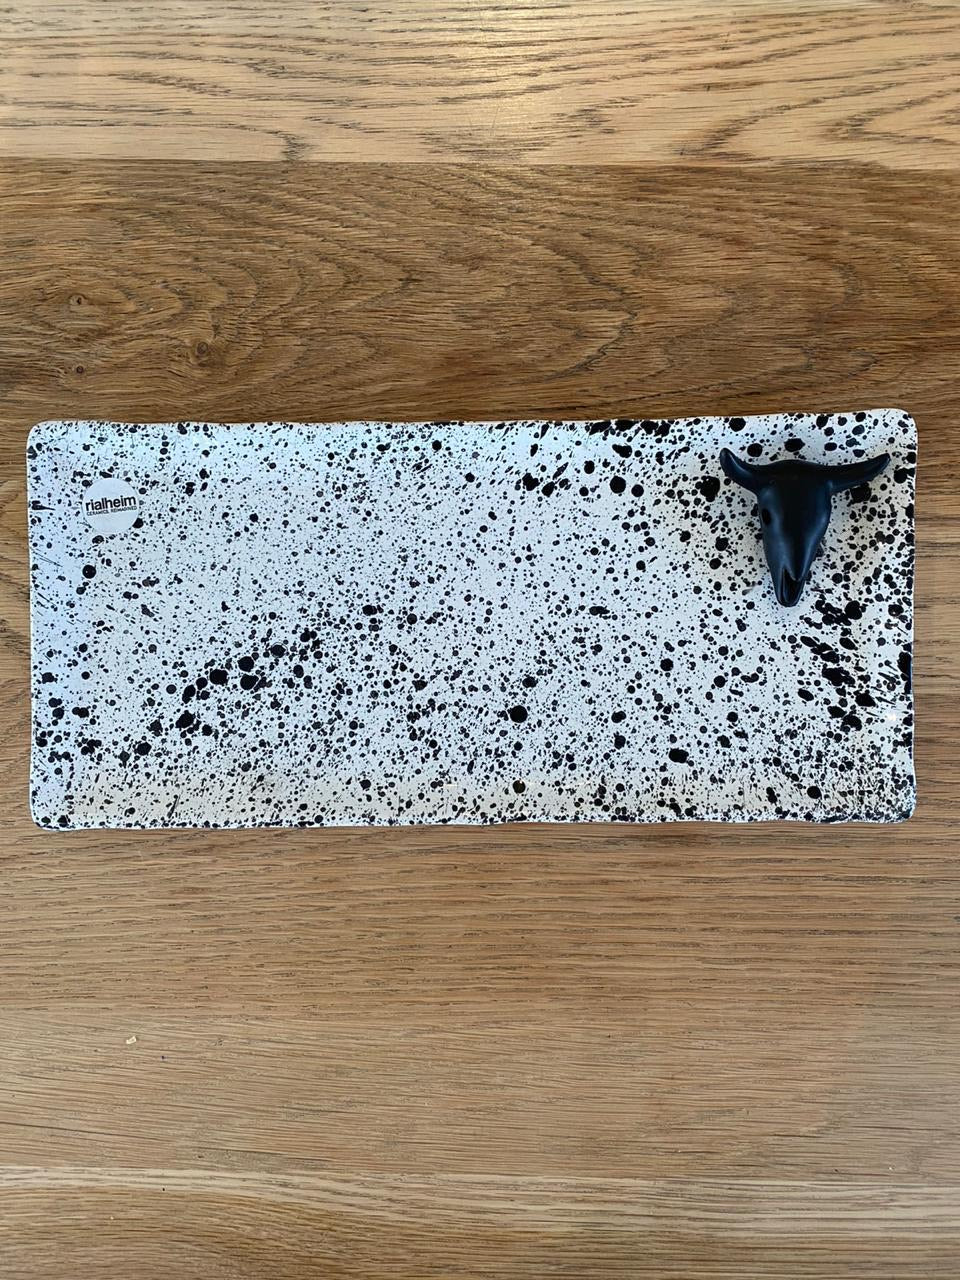 Rialheim biltong serving platter - white with black speckle and black ram head